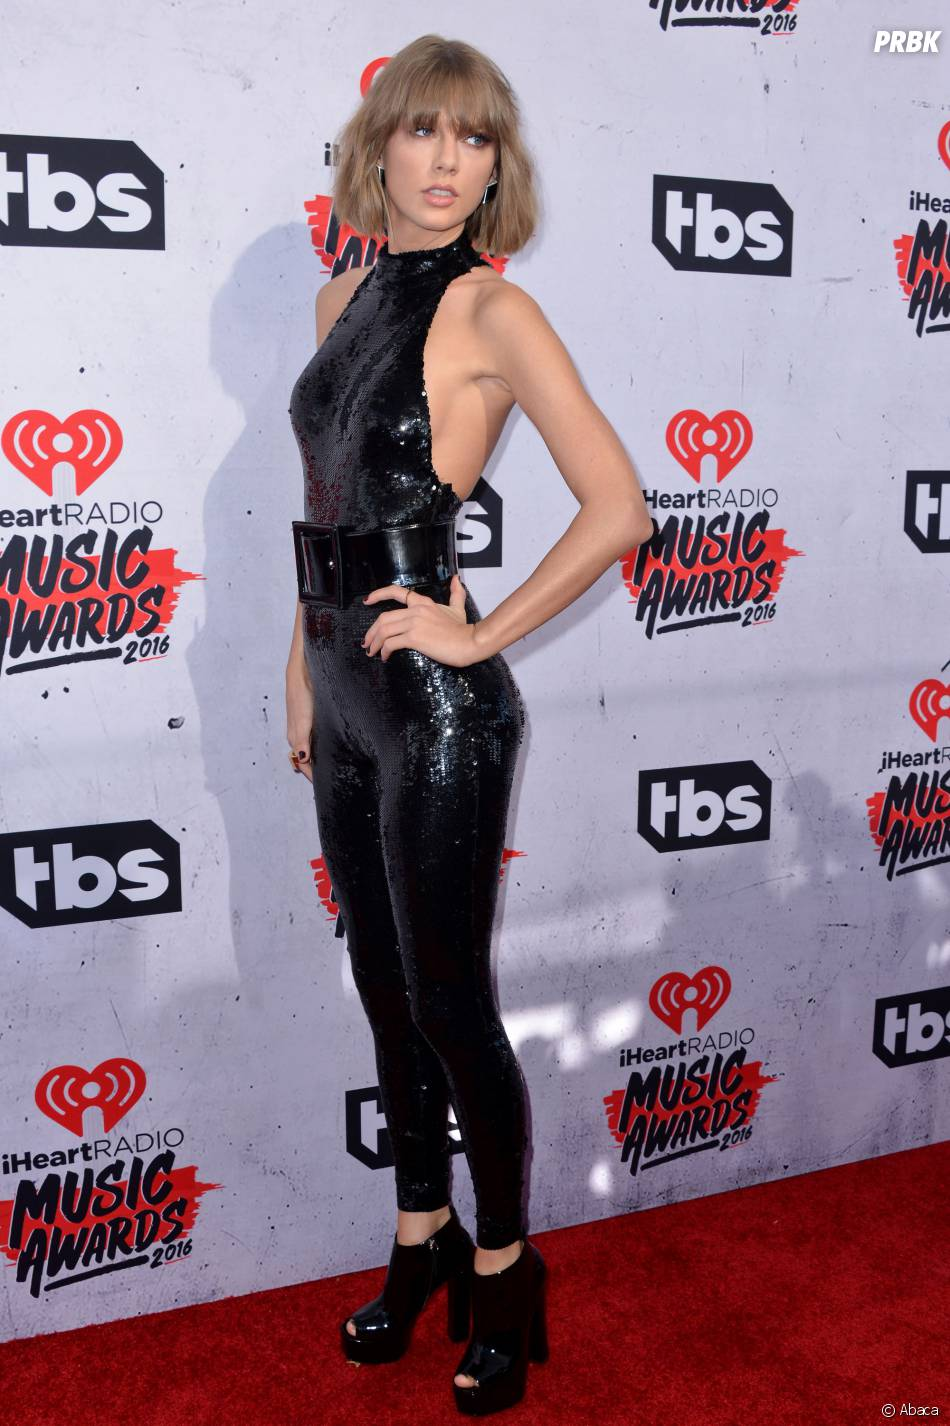 Taylor Swift aux iHeartRadio Music Awards 2016 le 3 avril à Los Angeles